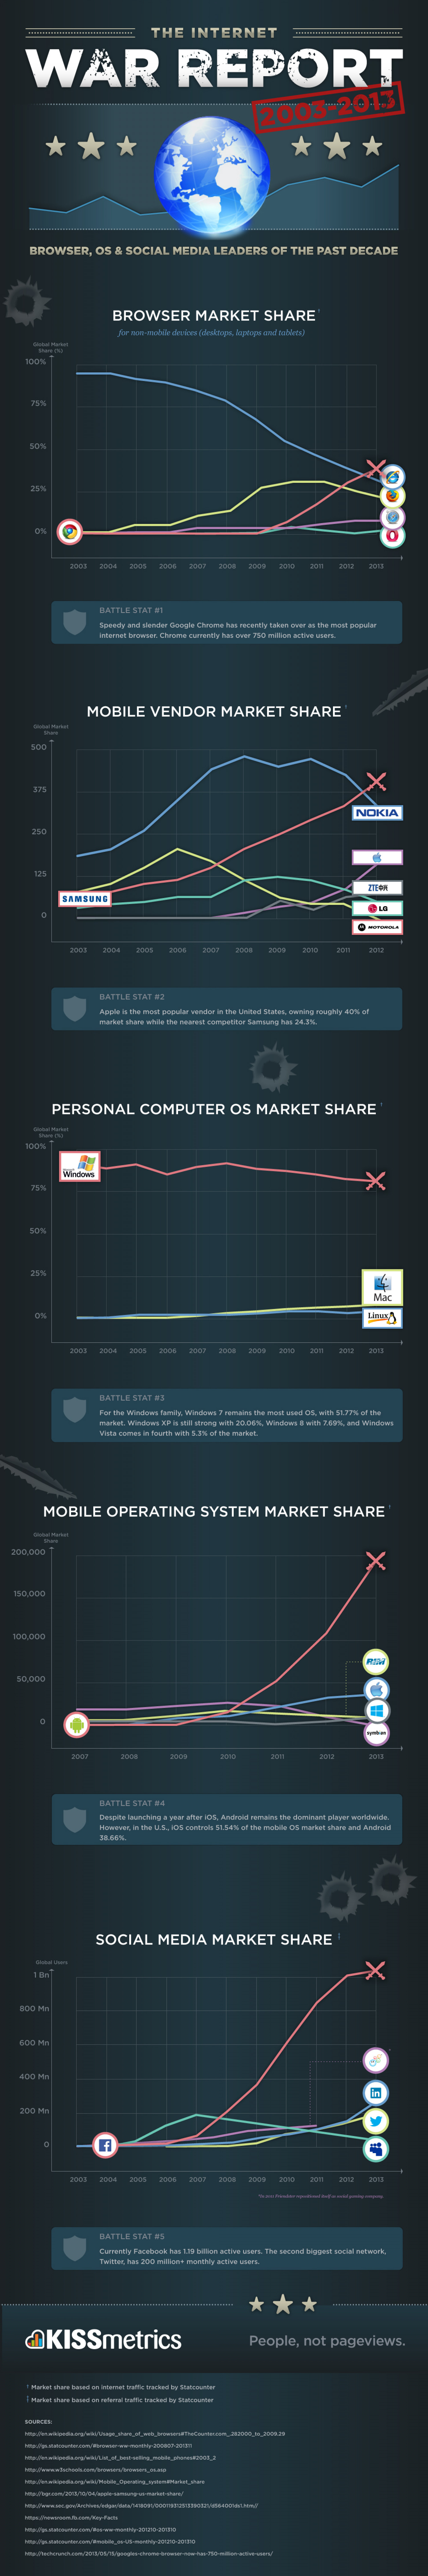 Social Media, OS & Browser Leaders of the Past Decade Infographic